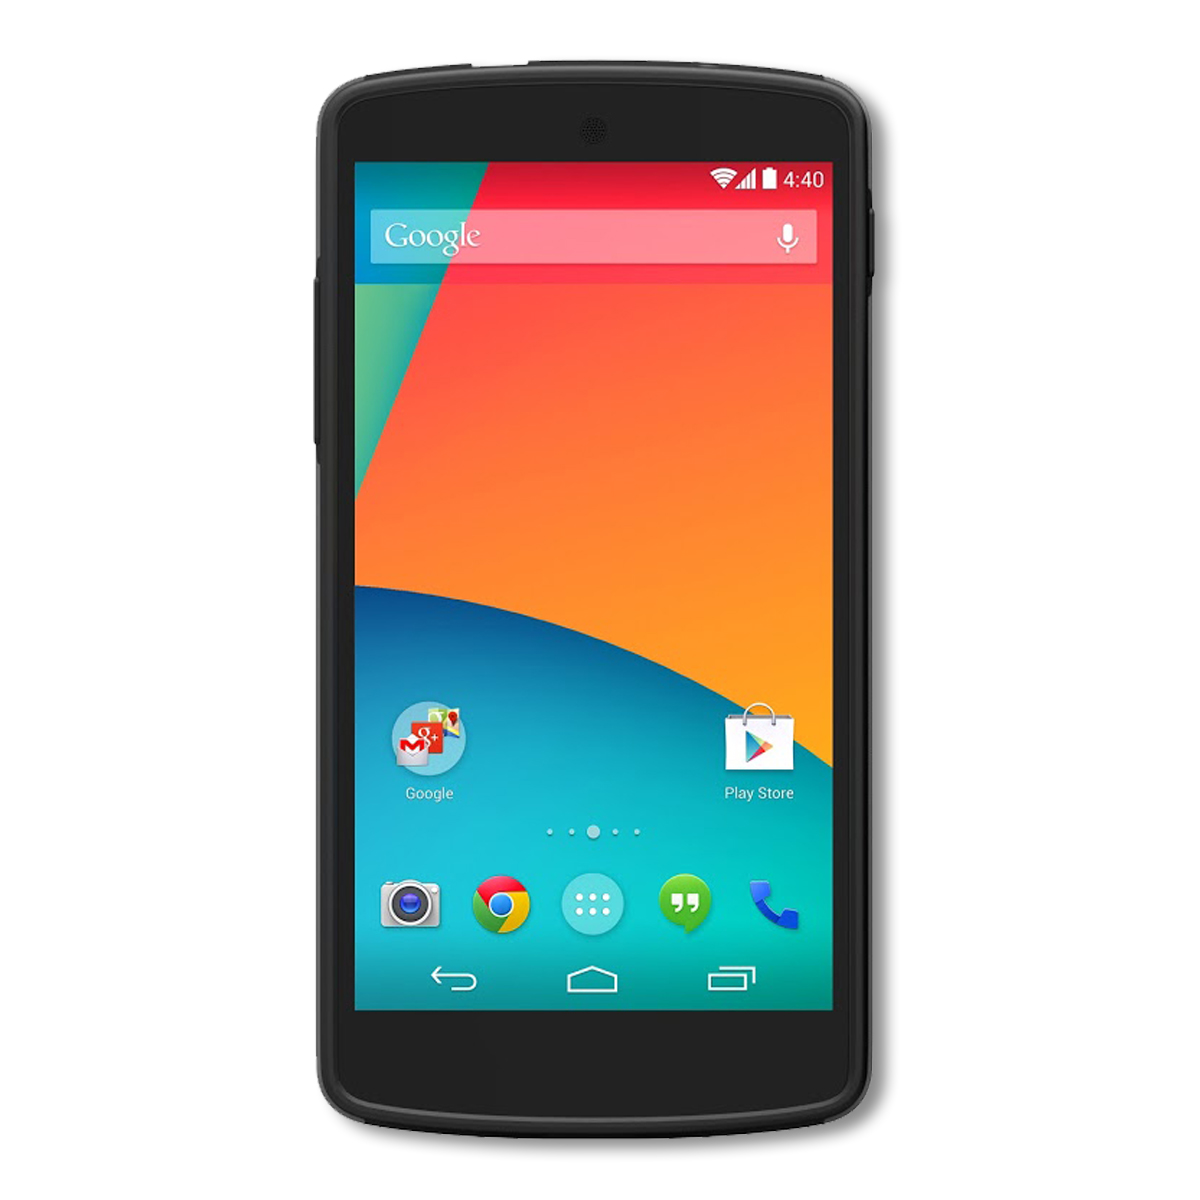 Google Nexus 5 LG D820 Android Smartphone 16GB(Black)GSM unlocked AT&T ...